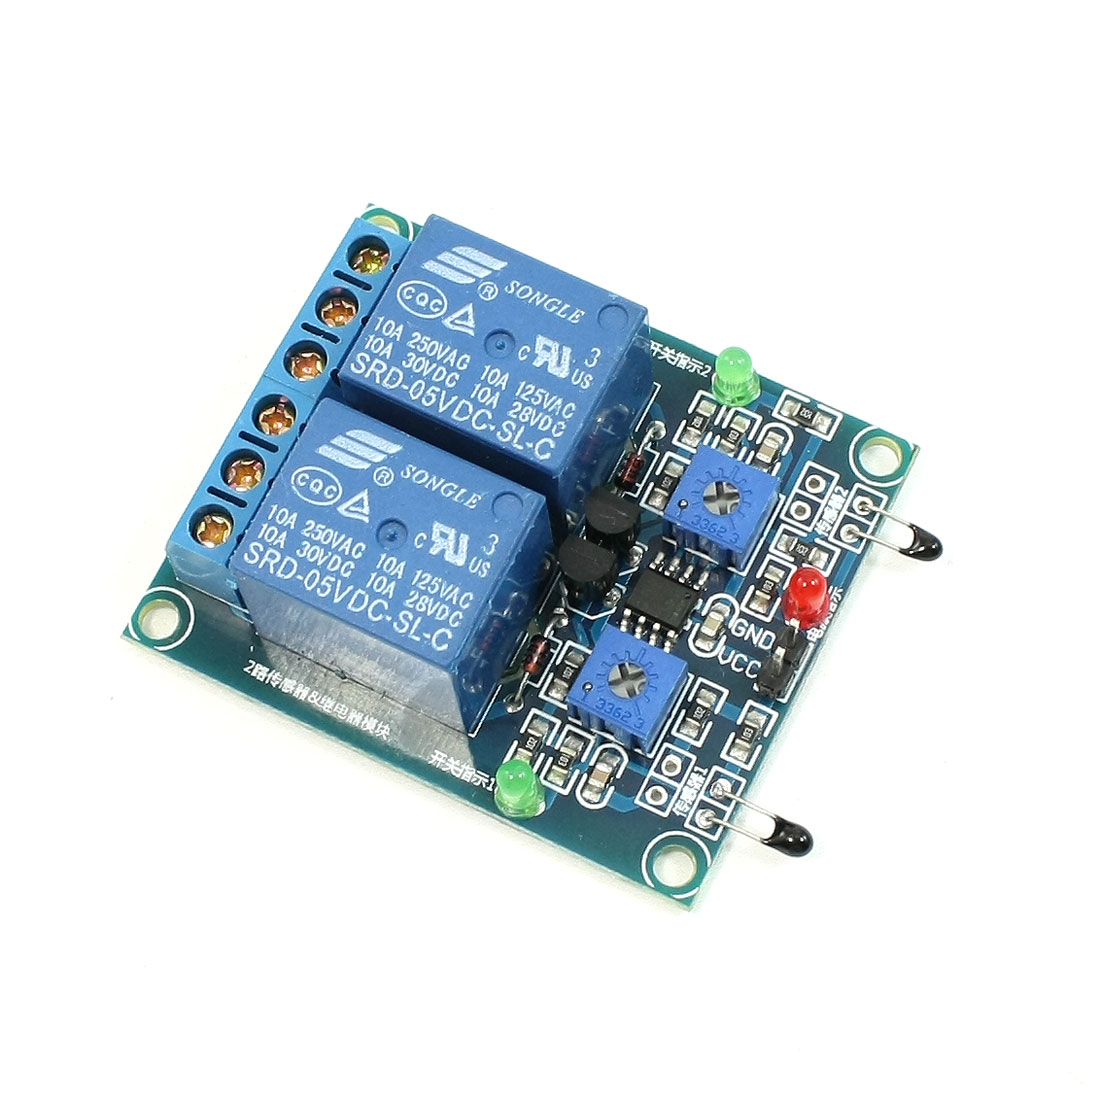 DC 5V 2 Channel Thermistor Control Relay Module for PLC TTL logic